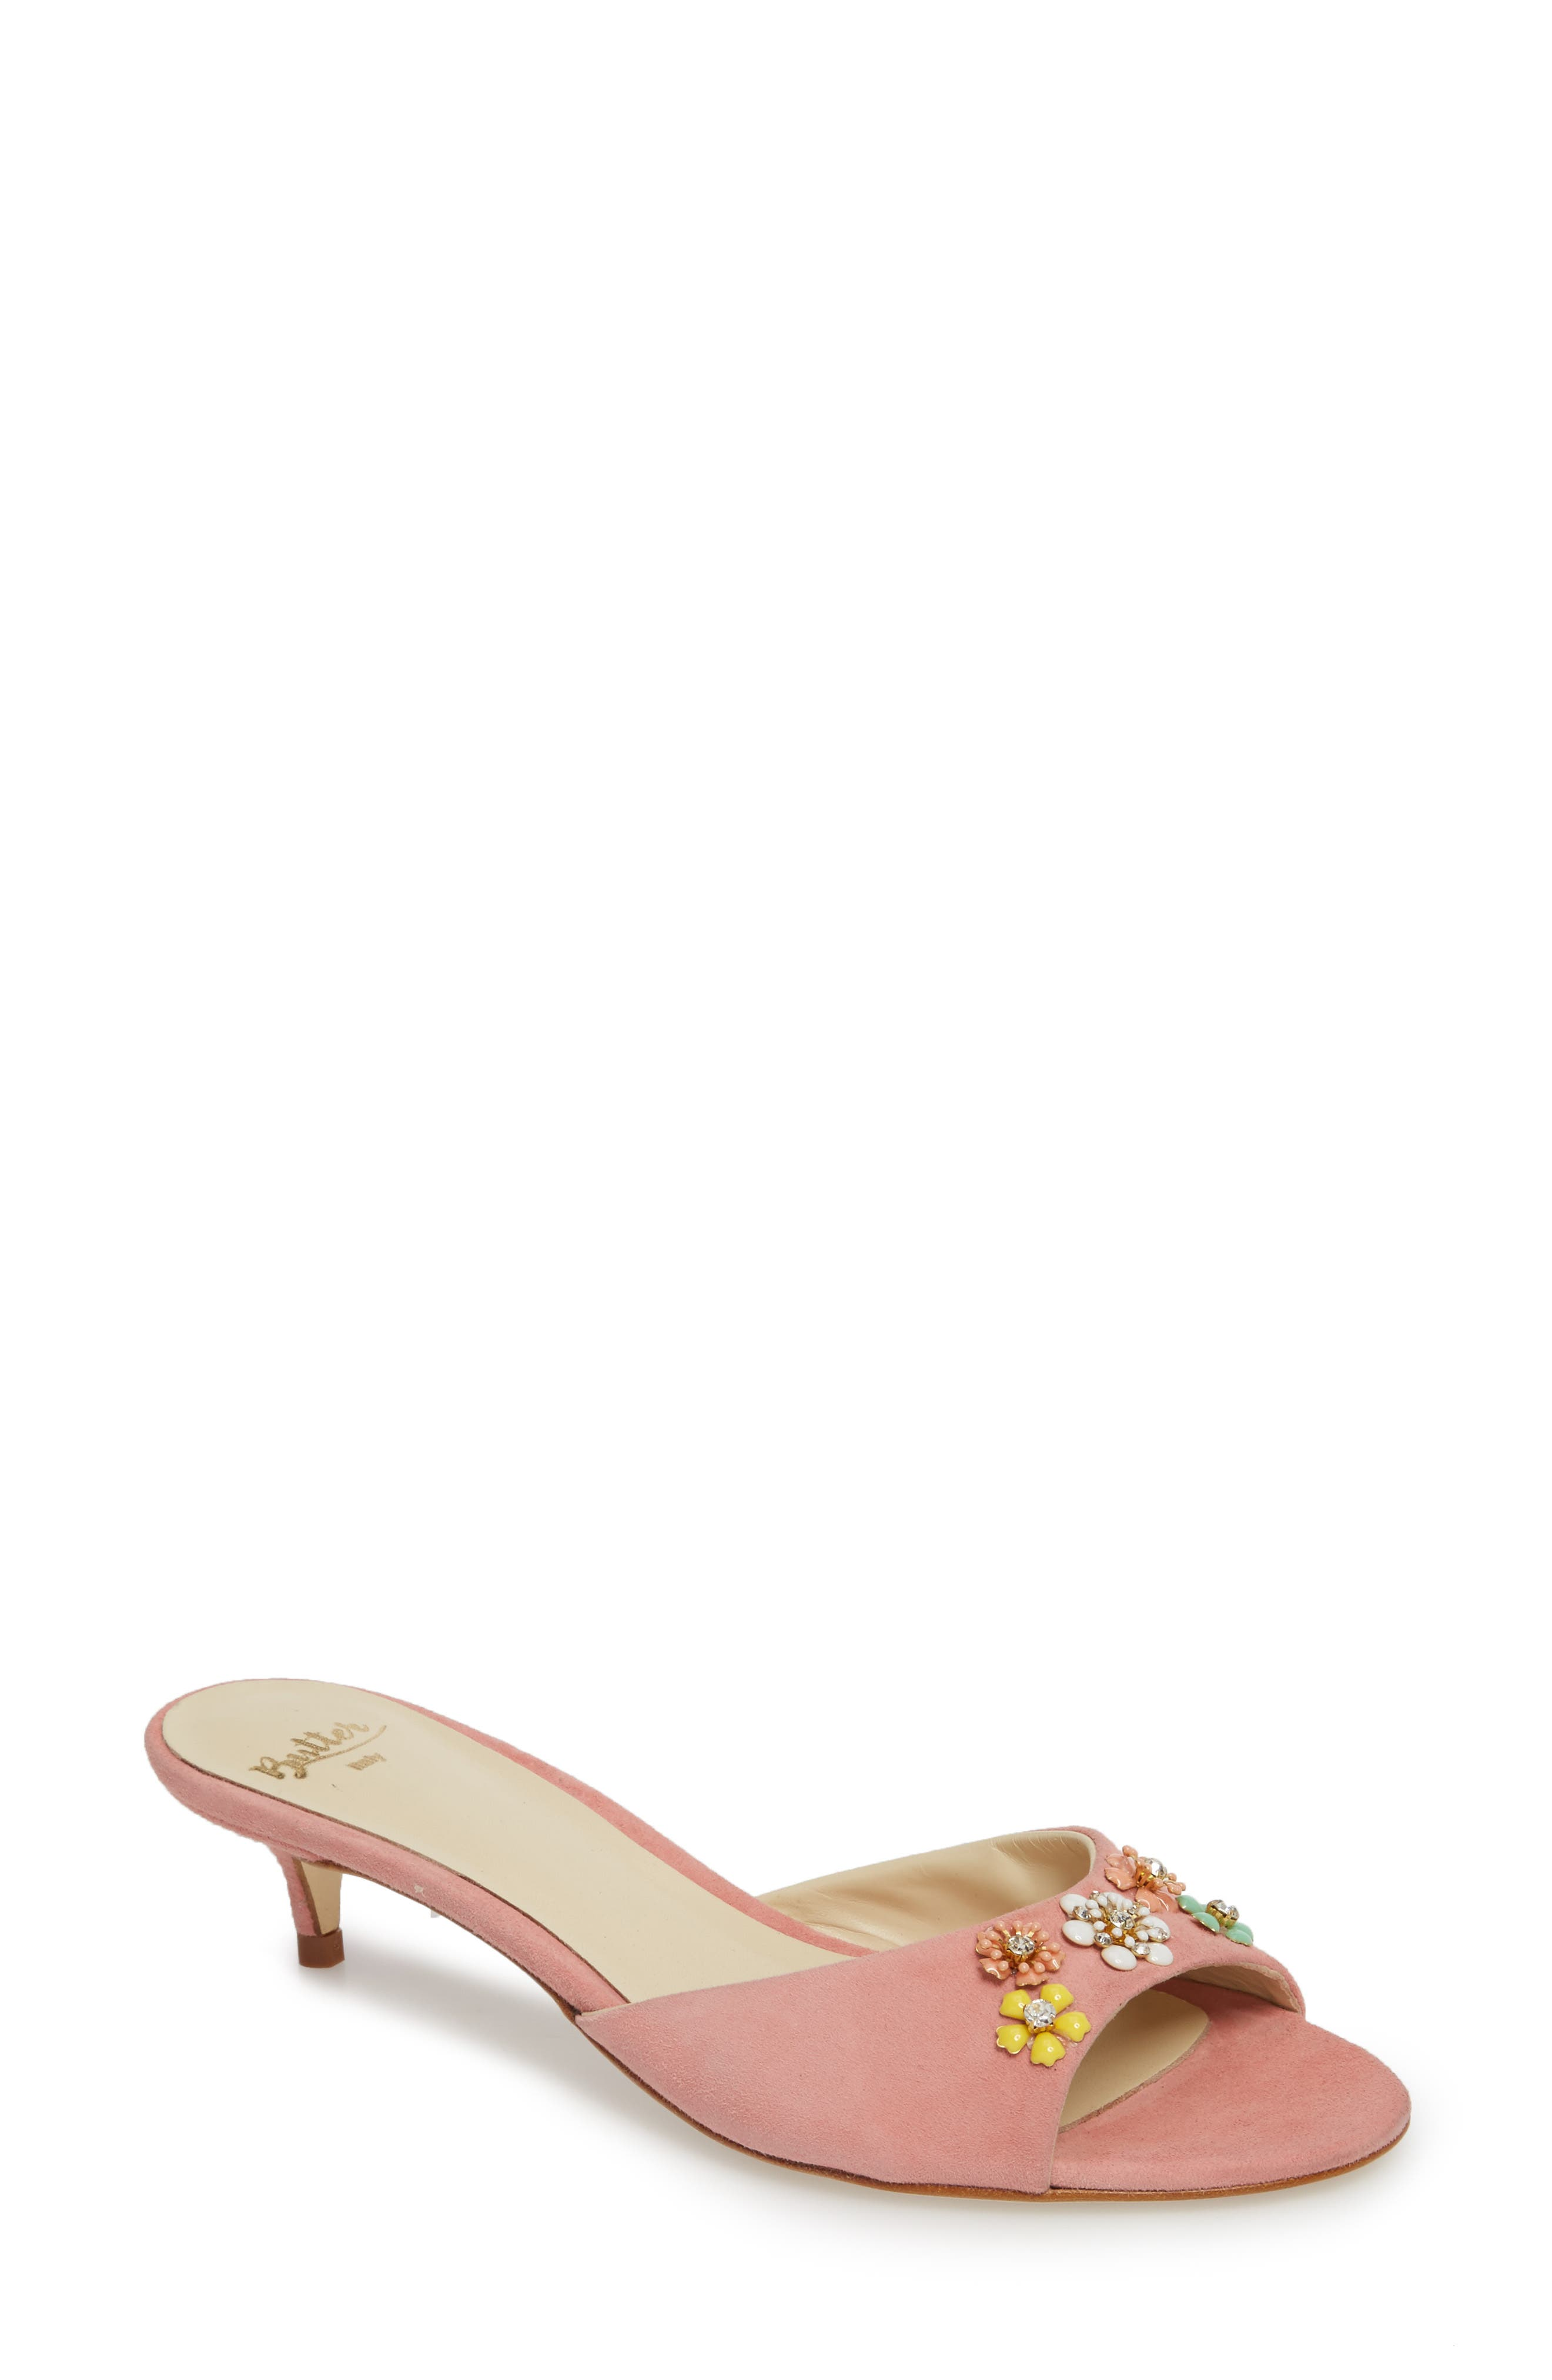 Butter Betteye Embellished Mule,                         Main,                         color, Seashell Suede